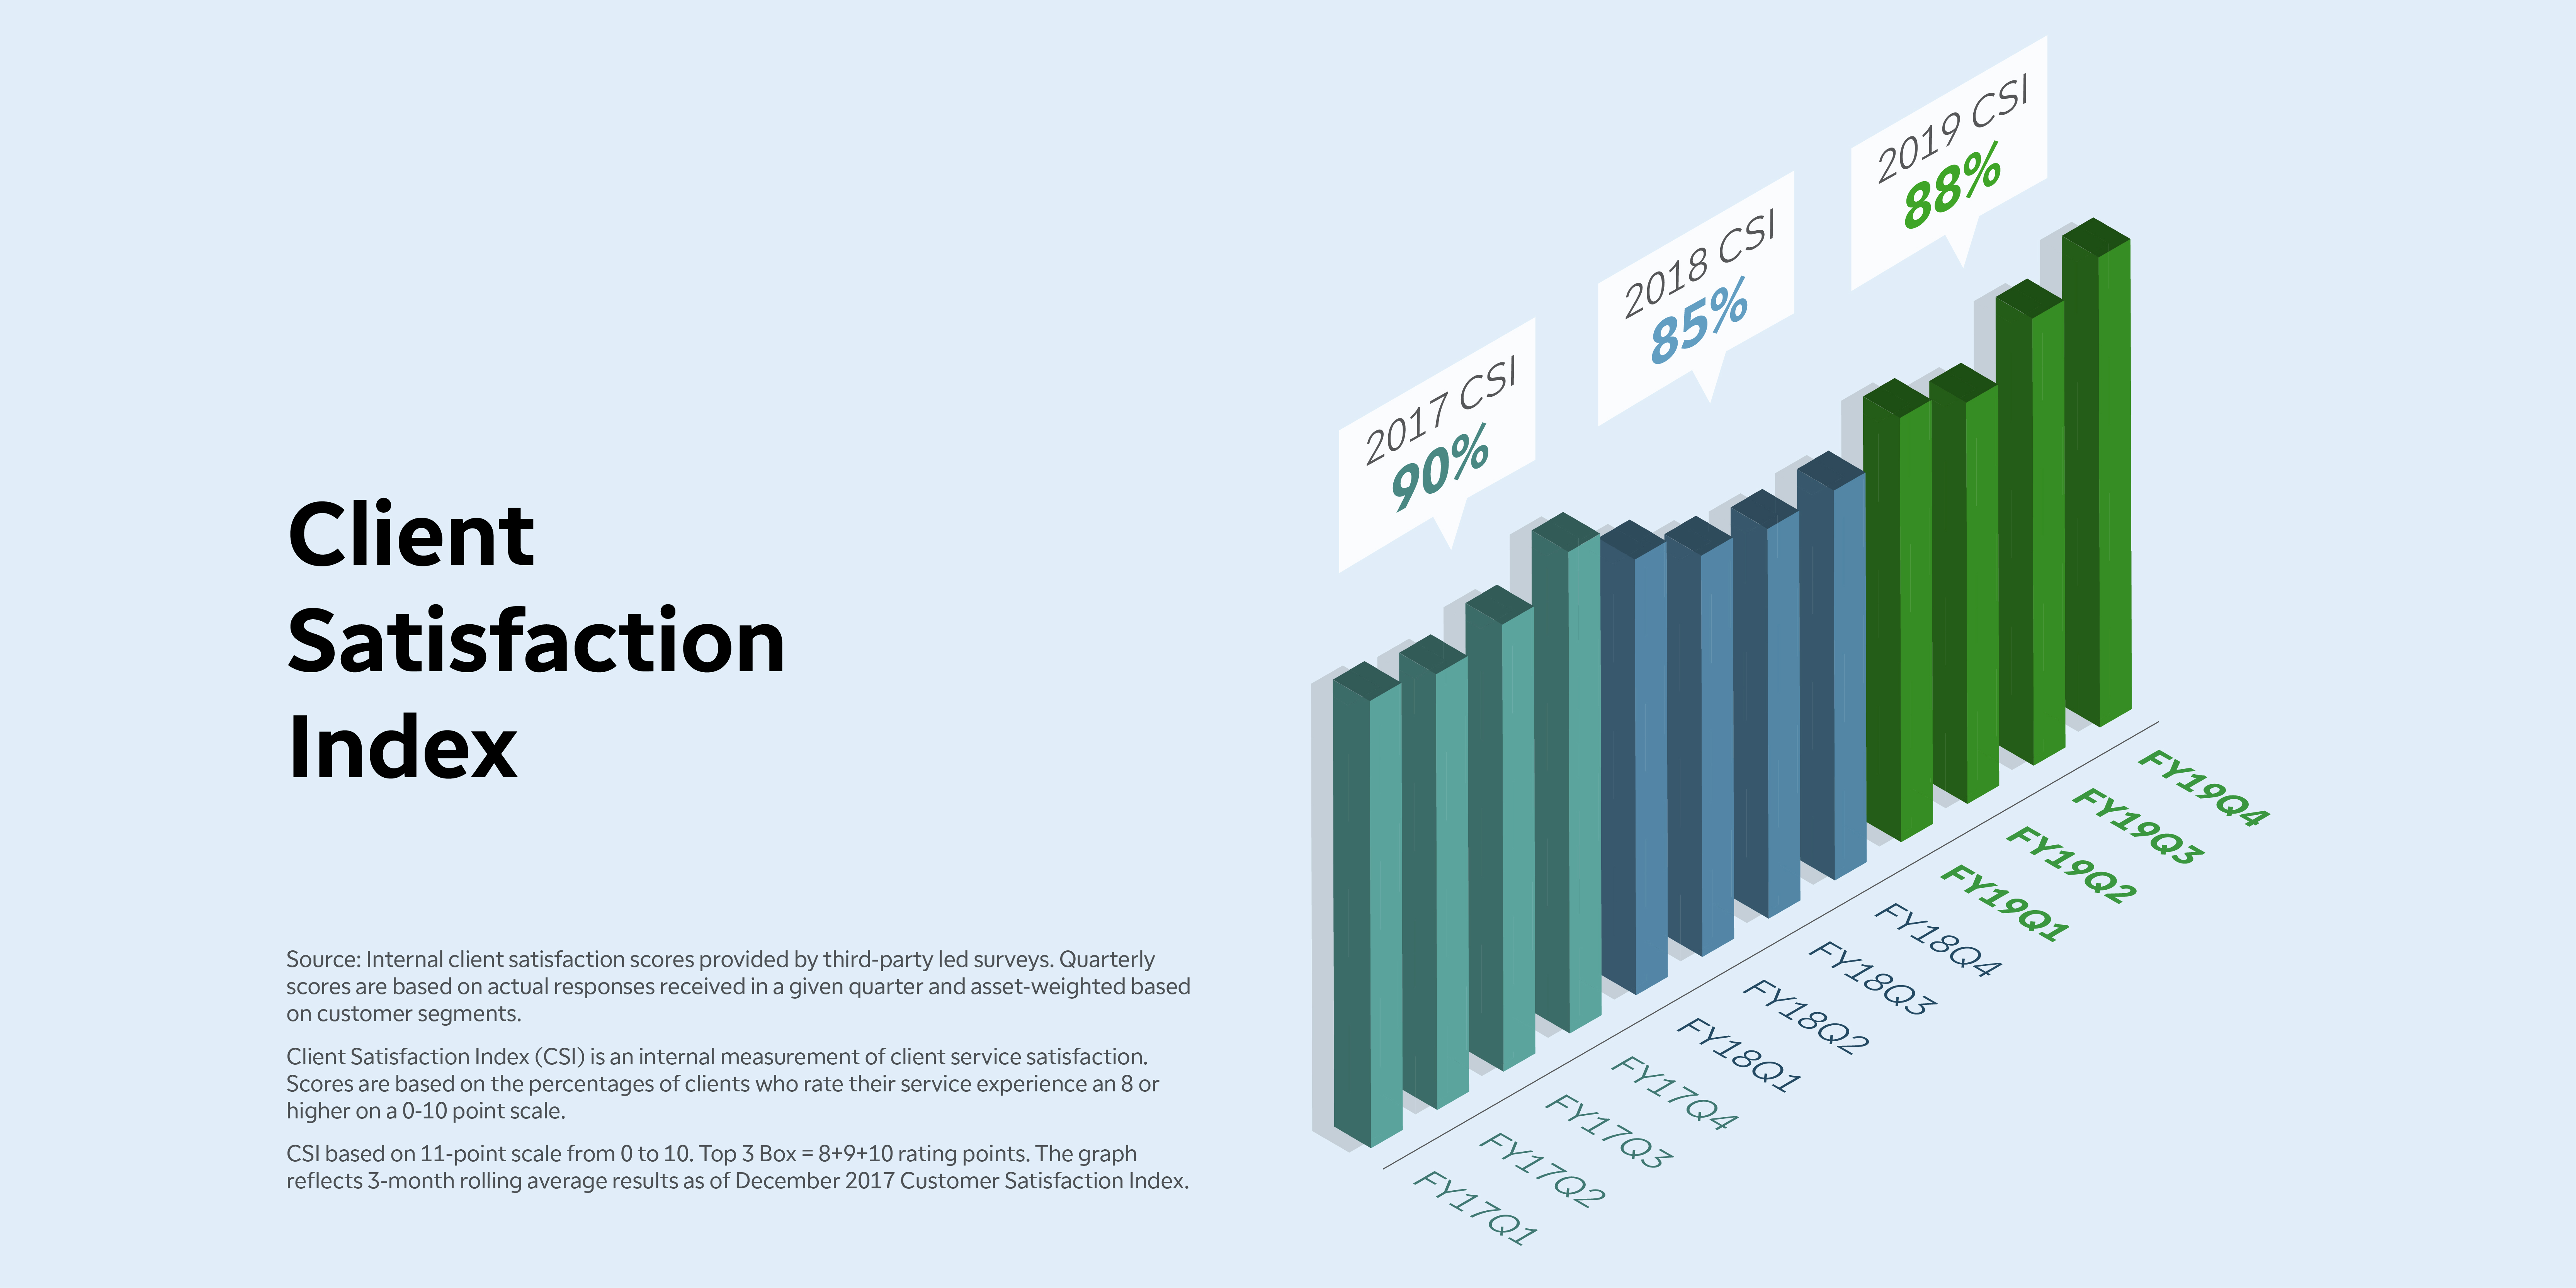 Customer Satisfaction Index - Consistently above 85% between 2017 - 2019